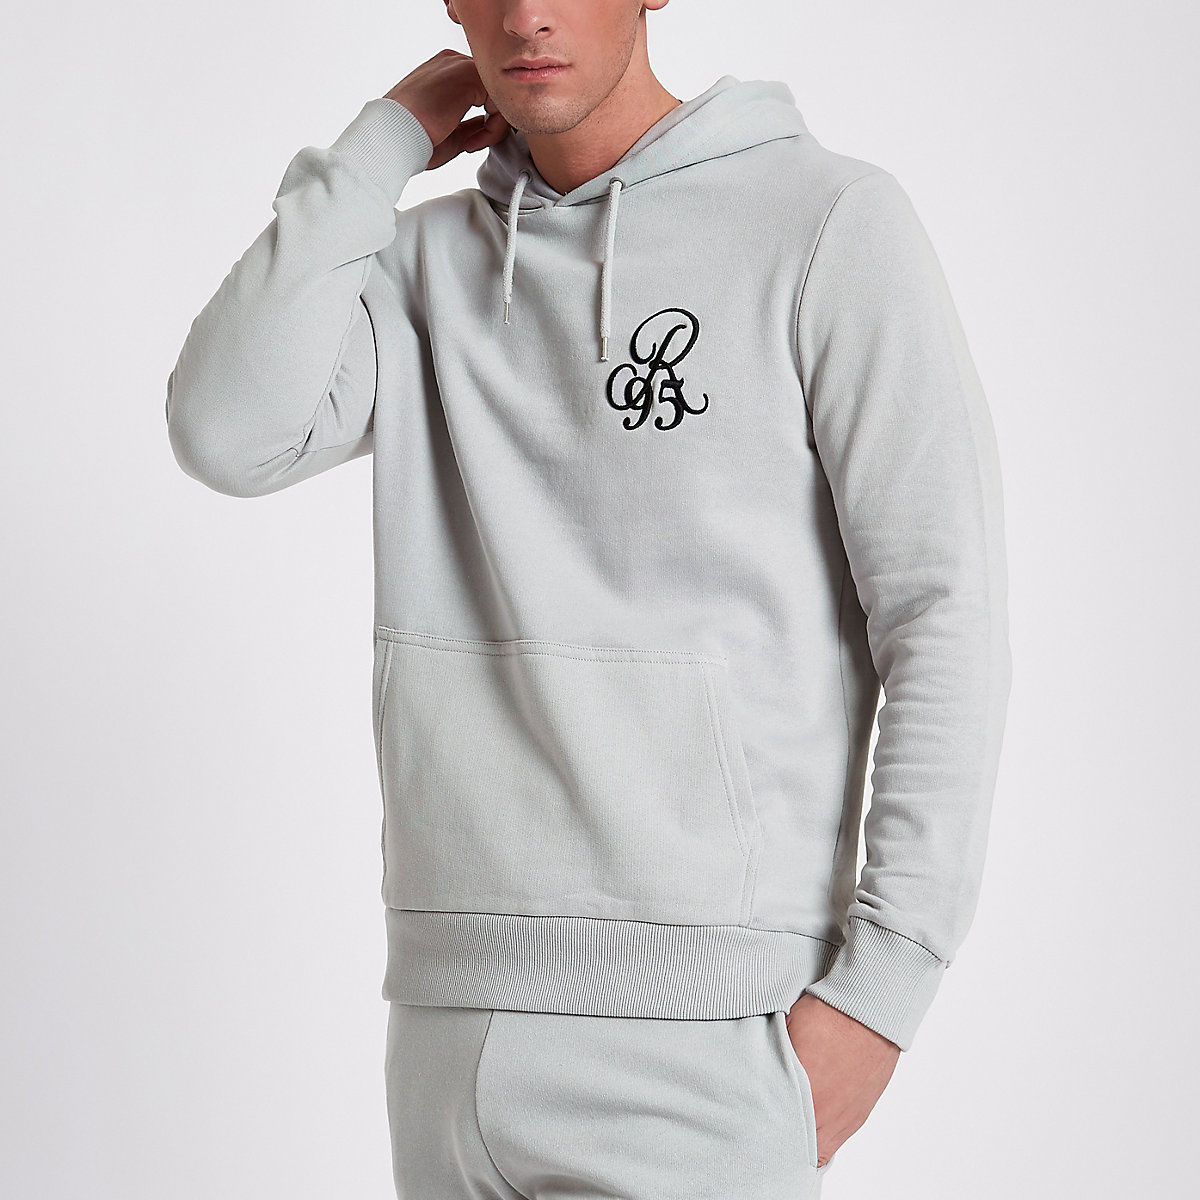 Light grey slim fit R95 hoodie